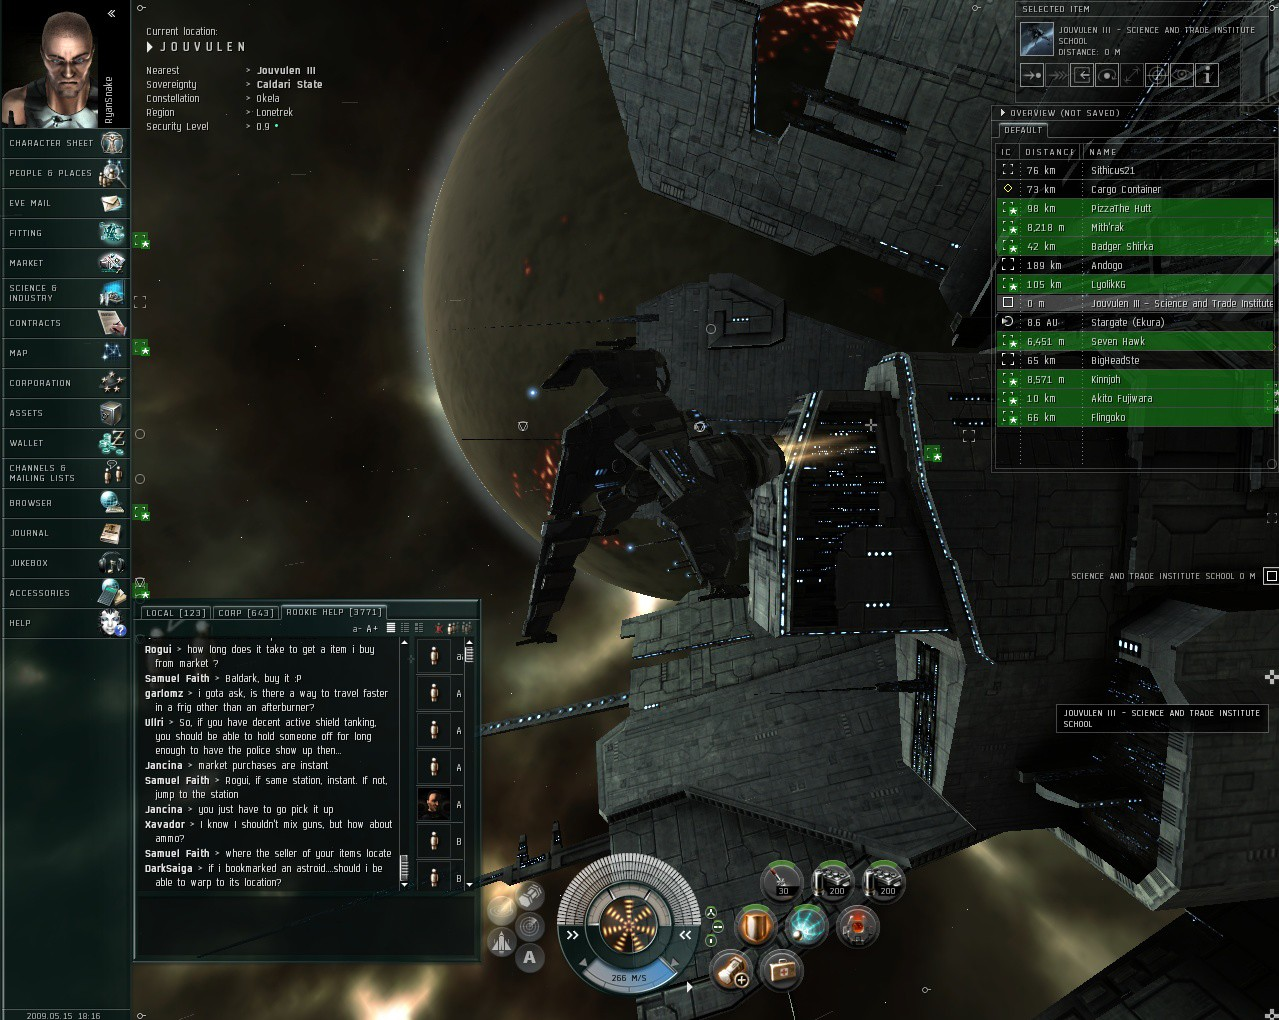 EVE Online - My new ship, the Malikos II. Isn't she a beaut'?